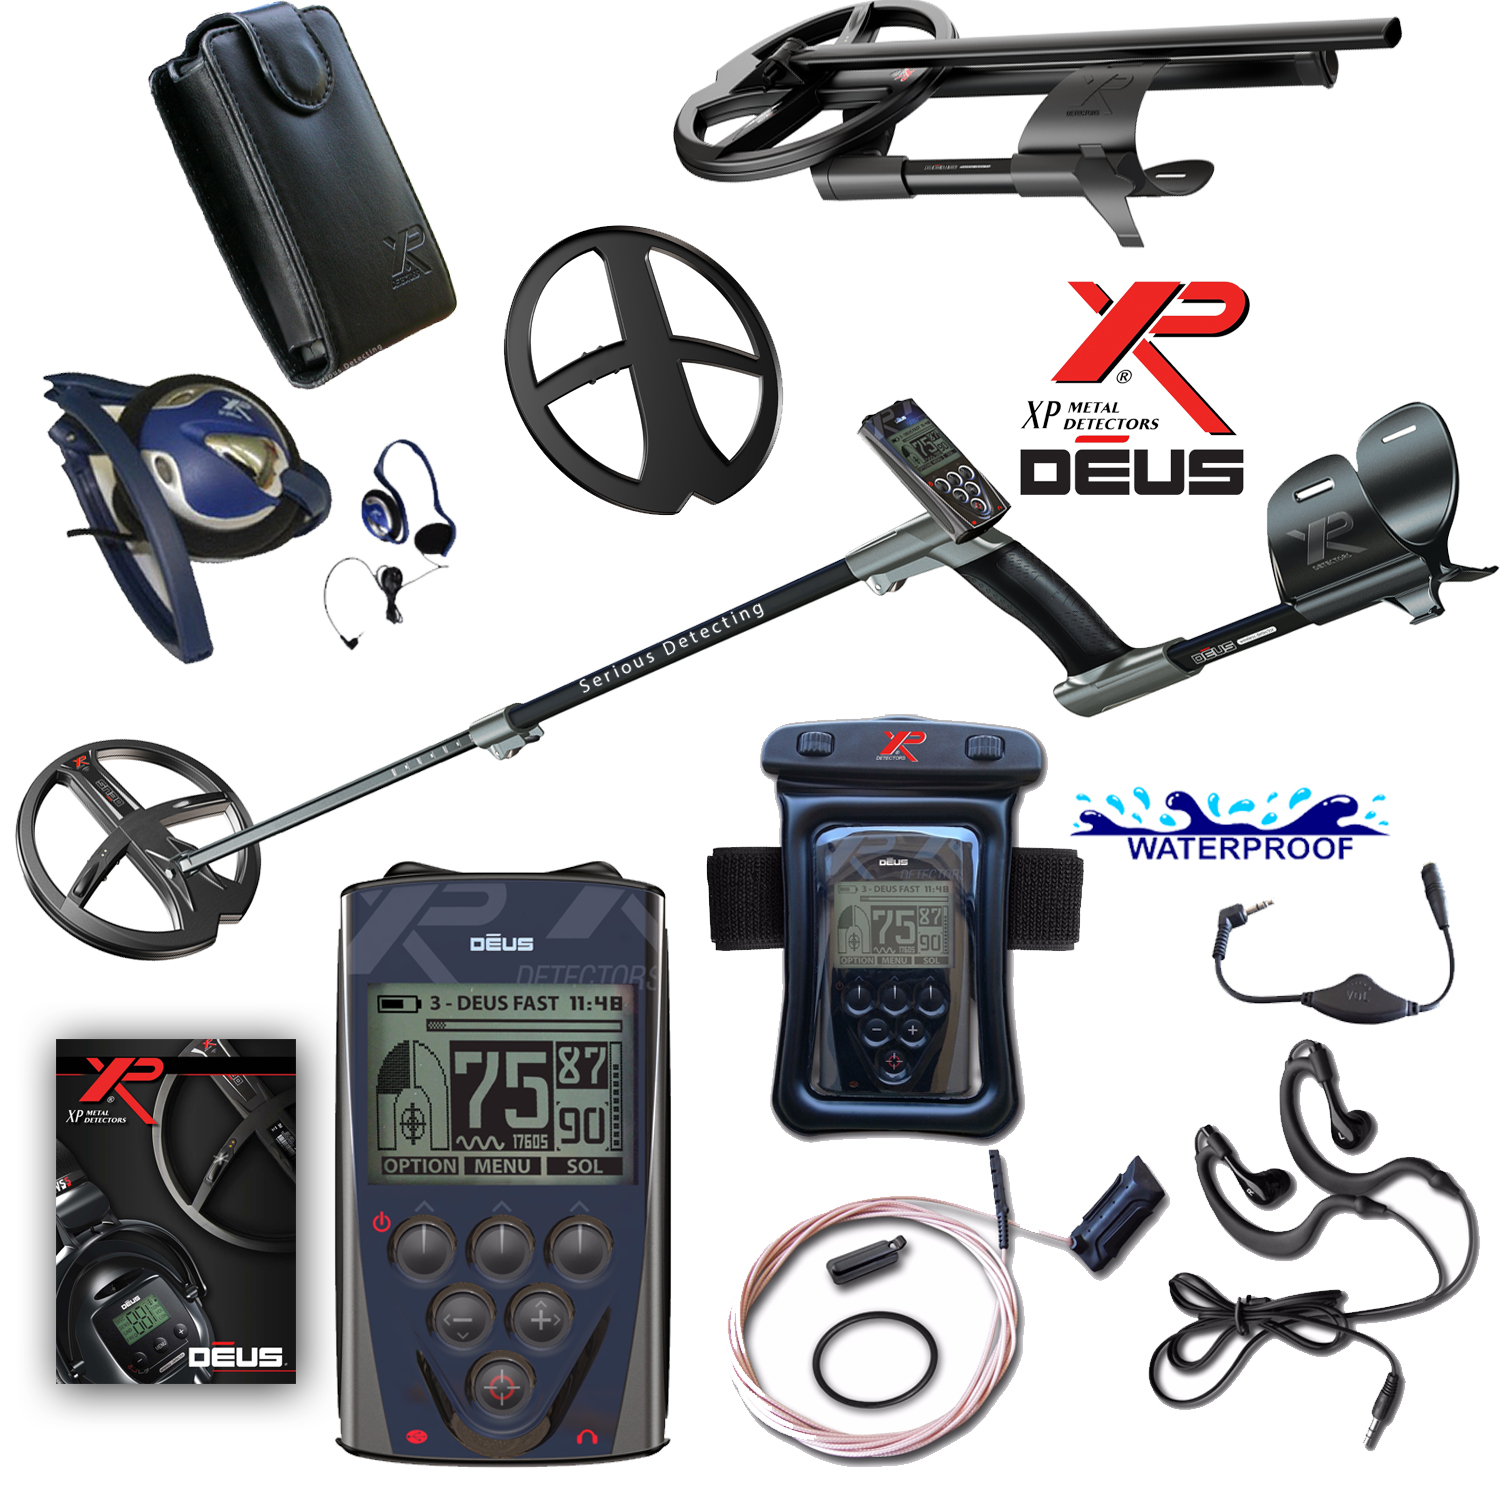 XP Deus Metal Detector with Wired Backphone and Remote including 9 inch Coil and Waterproof Kit by